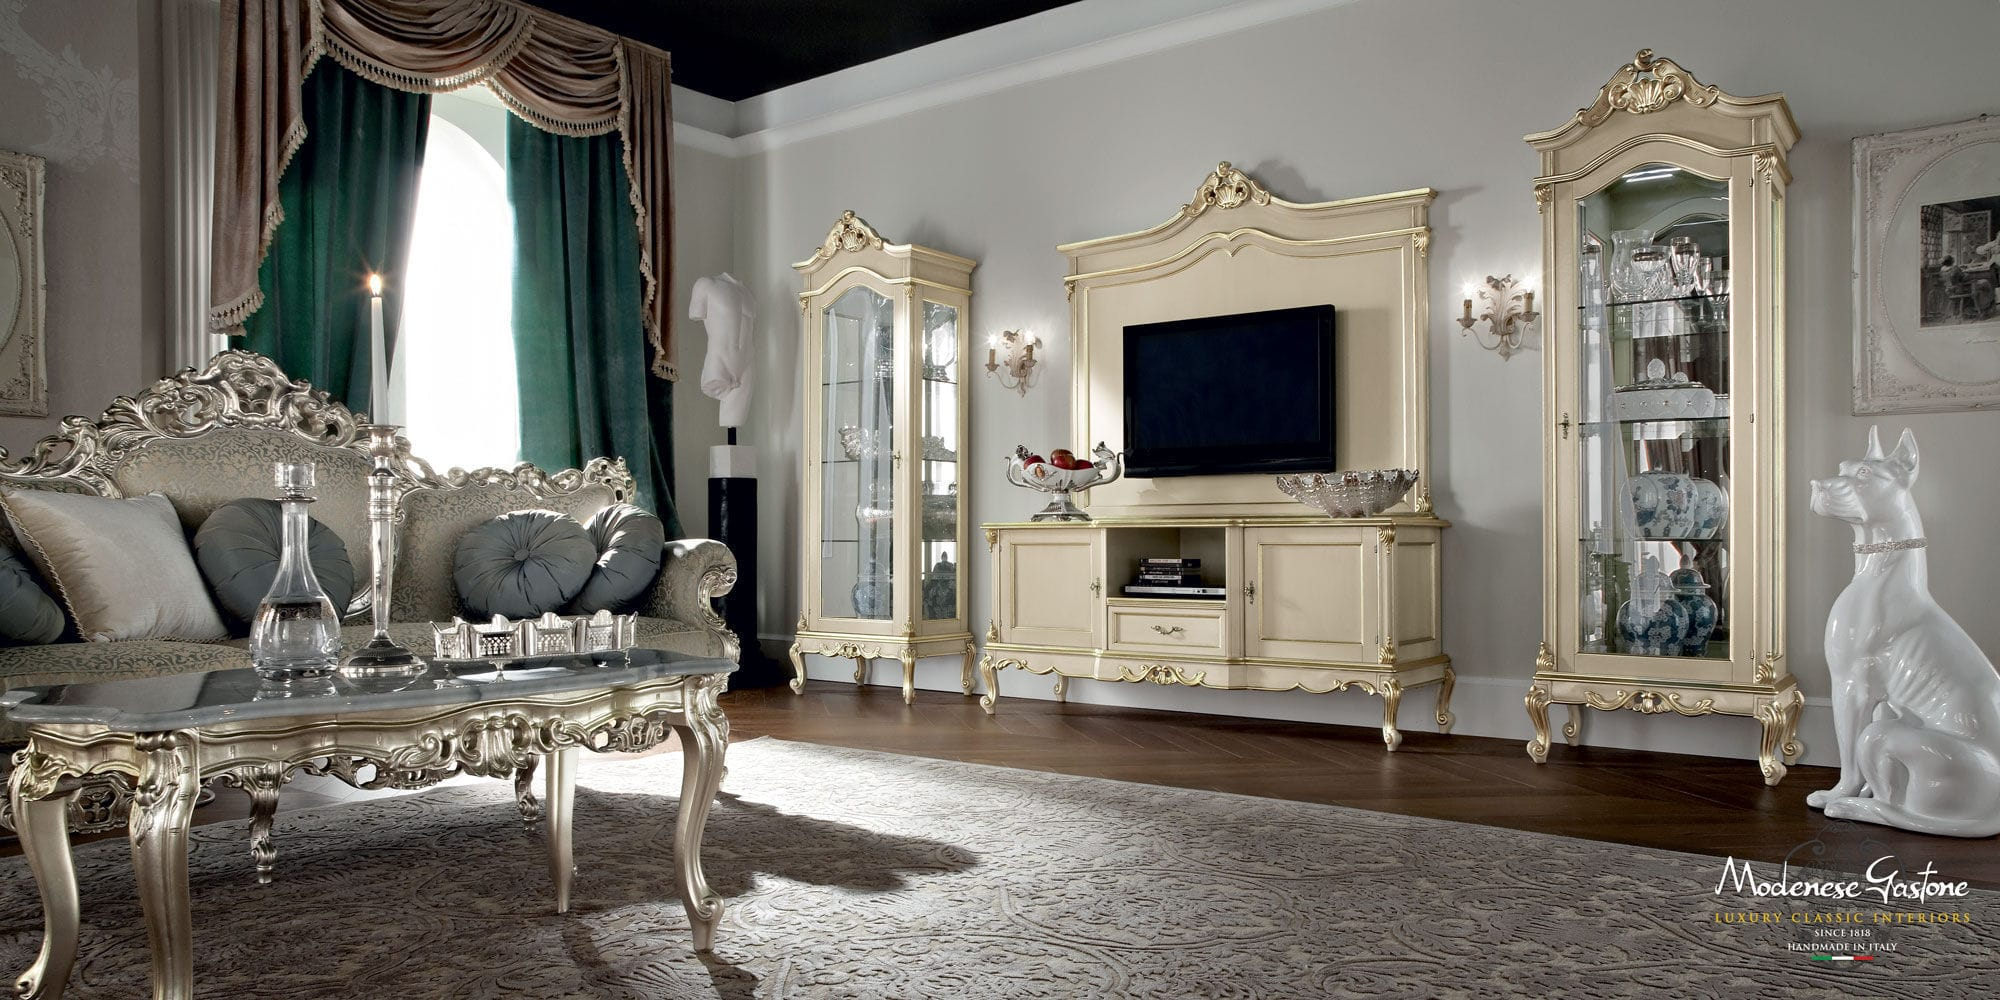 ... Classic TV Cabinet / Wooden .CASANOVA Modenese Gastone Luxury Classic  Furniture